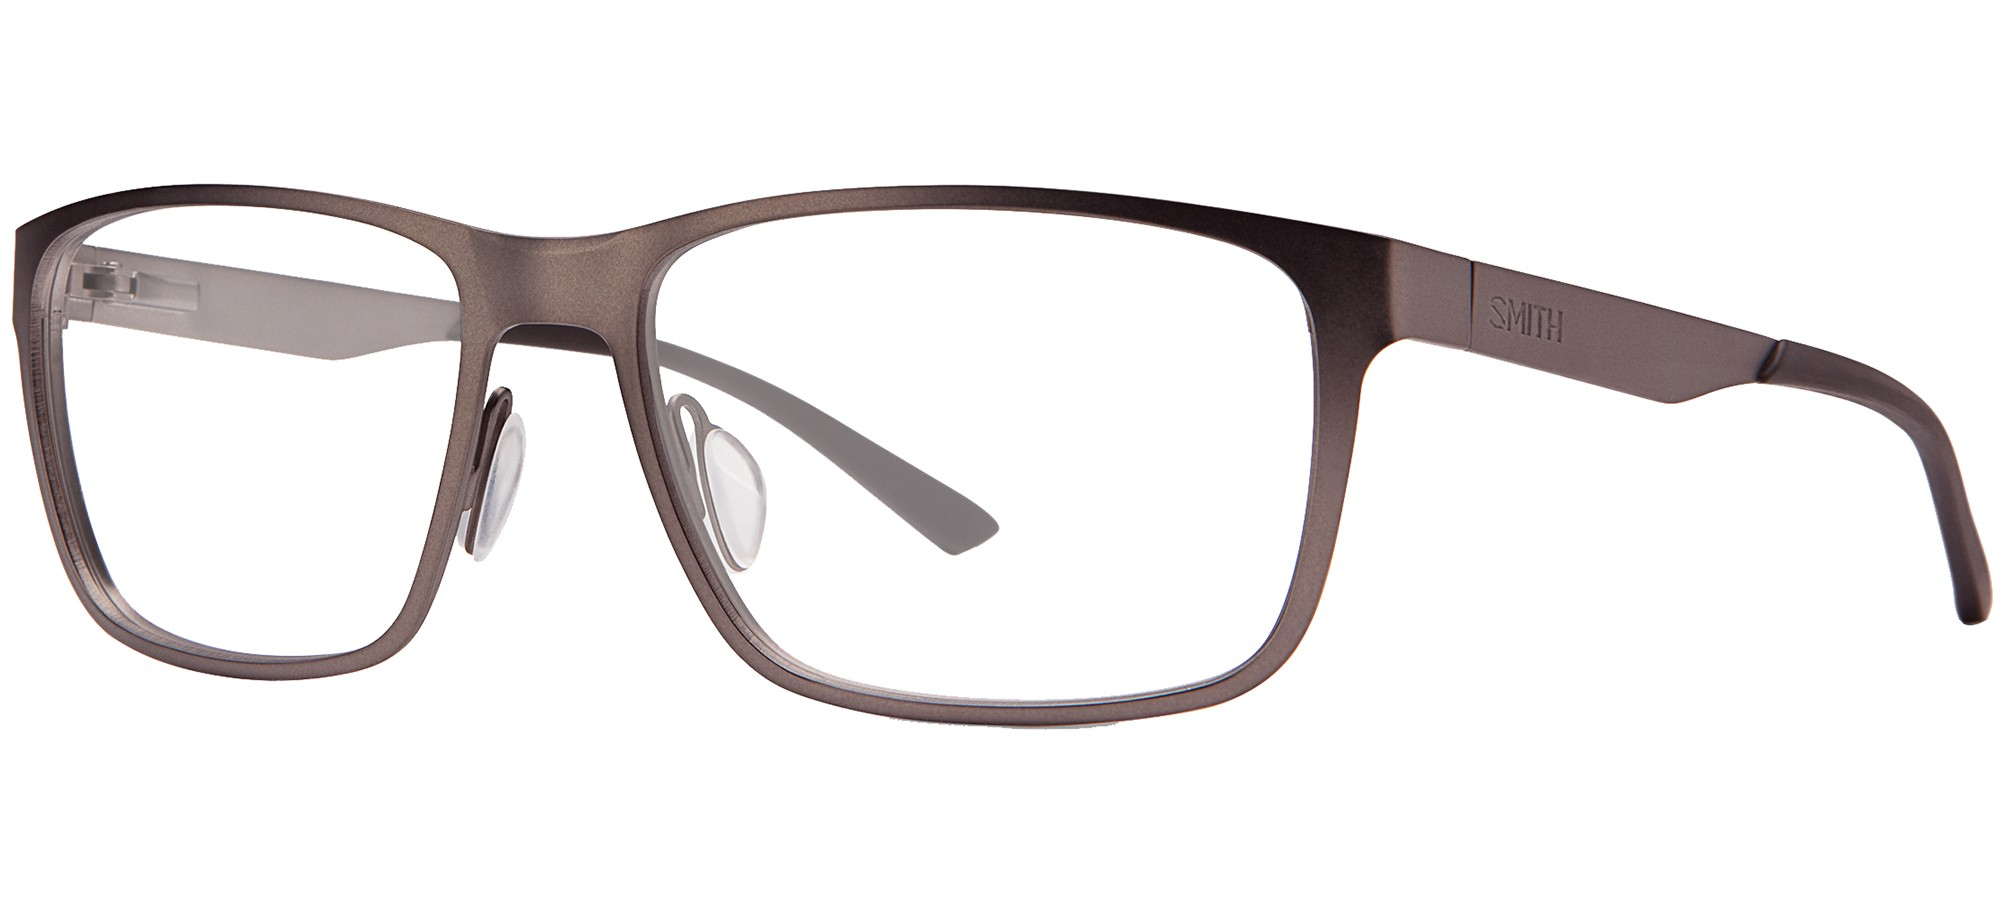 Smith Optics eyeglasses WAYFINDER